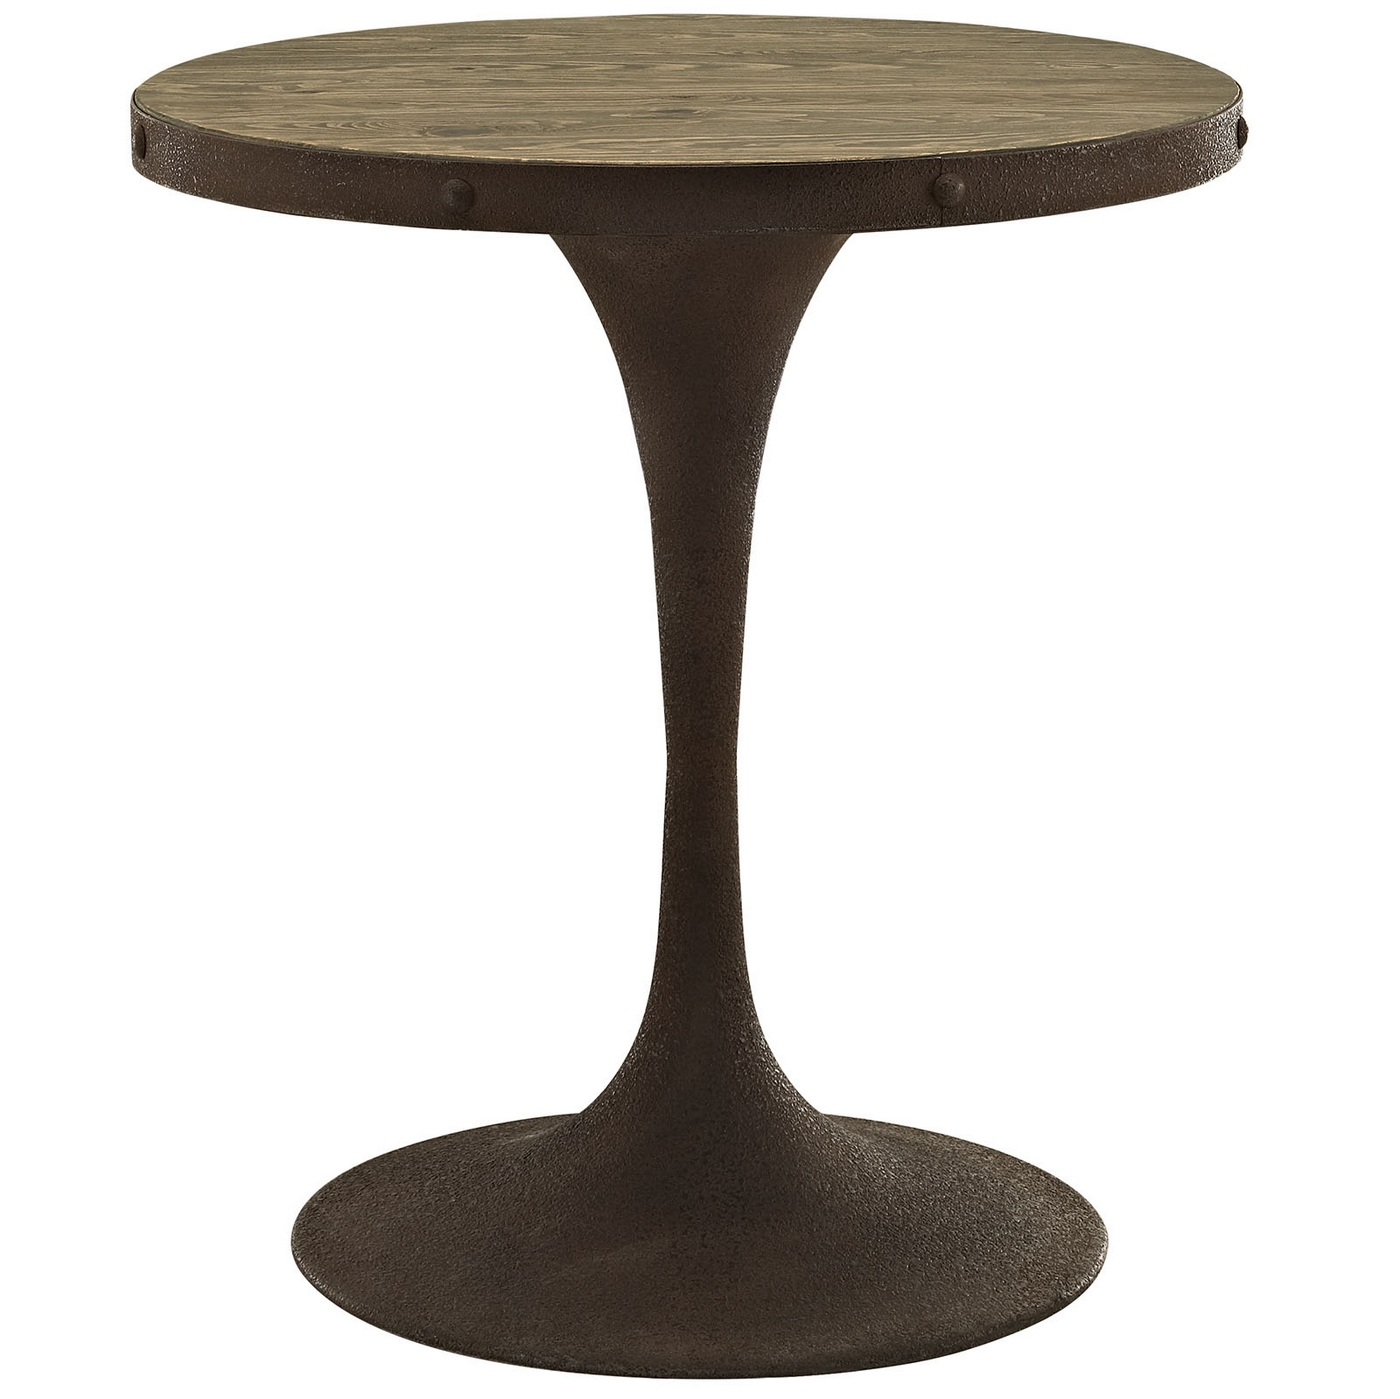 drive rustic 28 round wood top dining table w iron pedestal base